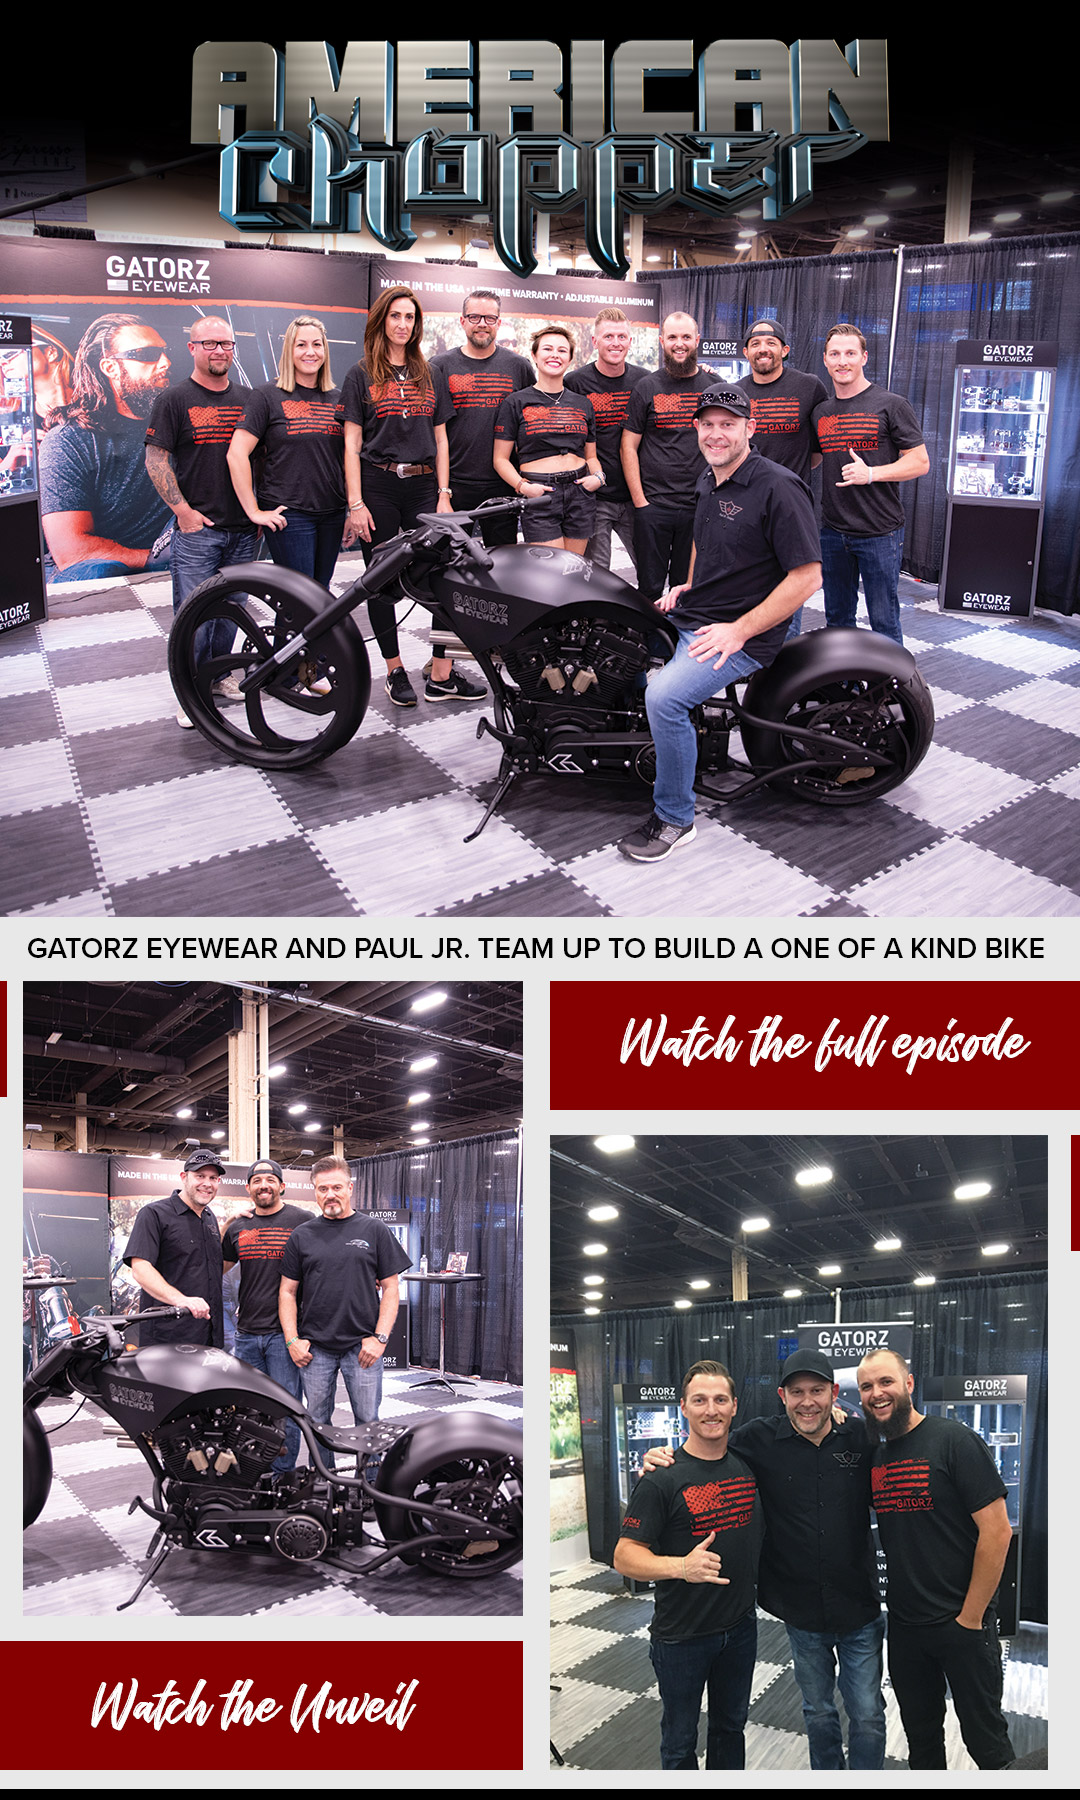 b2de9e50ea8f We're thrilled to announce our partnership with Paul Jr. and his team at American  Chopper. They built a custom Gatorz motorcycle, and it completely blew us  ...